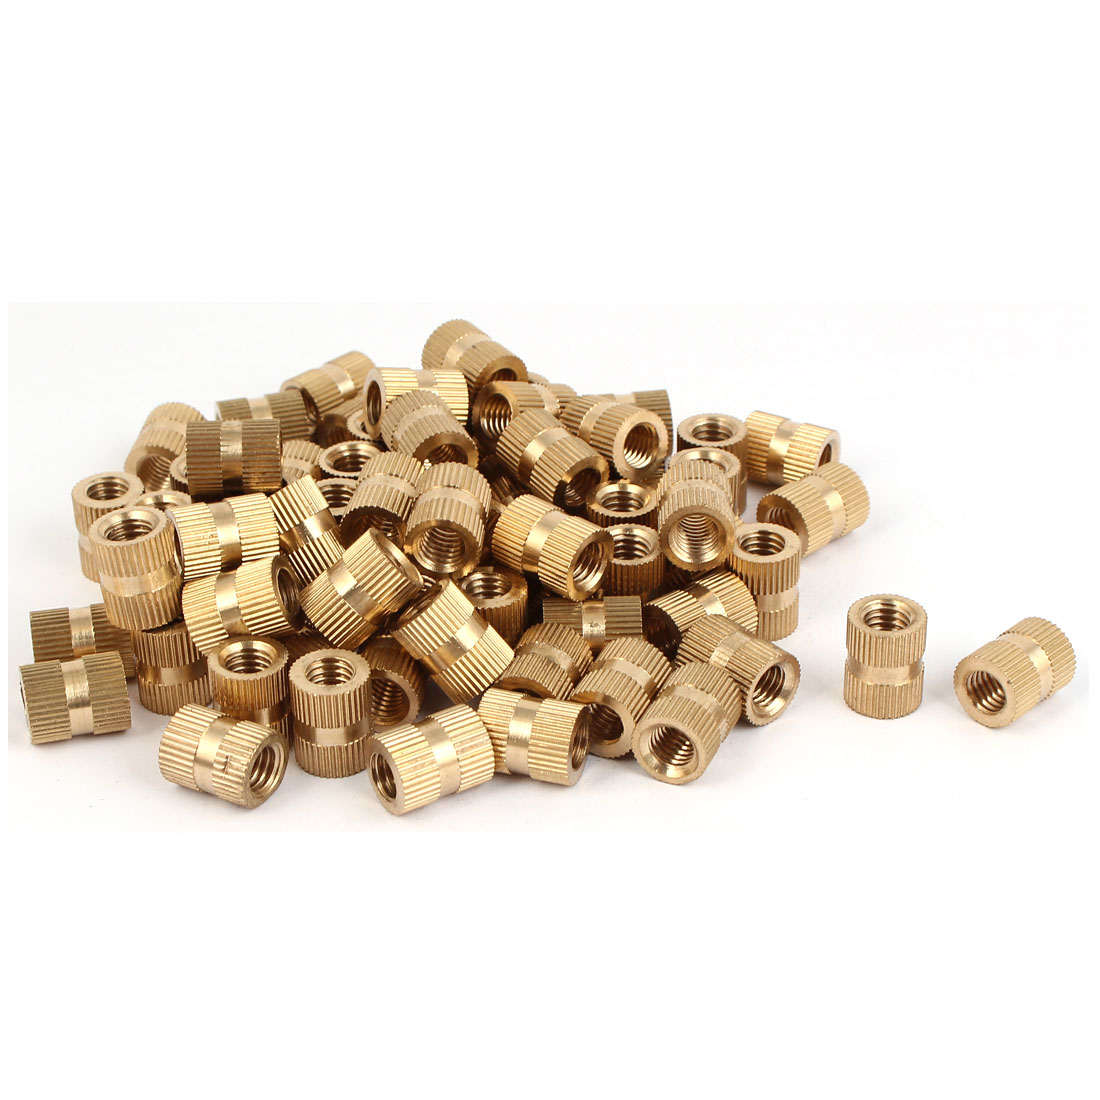 M8 x 15mm Brass Cylinder Injection Molding Knurled Threaded Embedded Nuts 100PCS